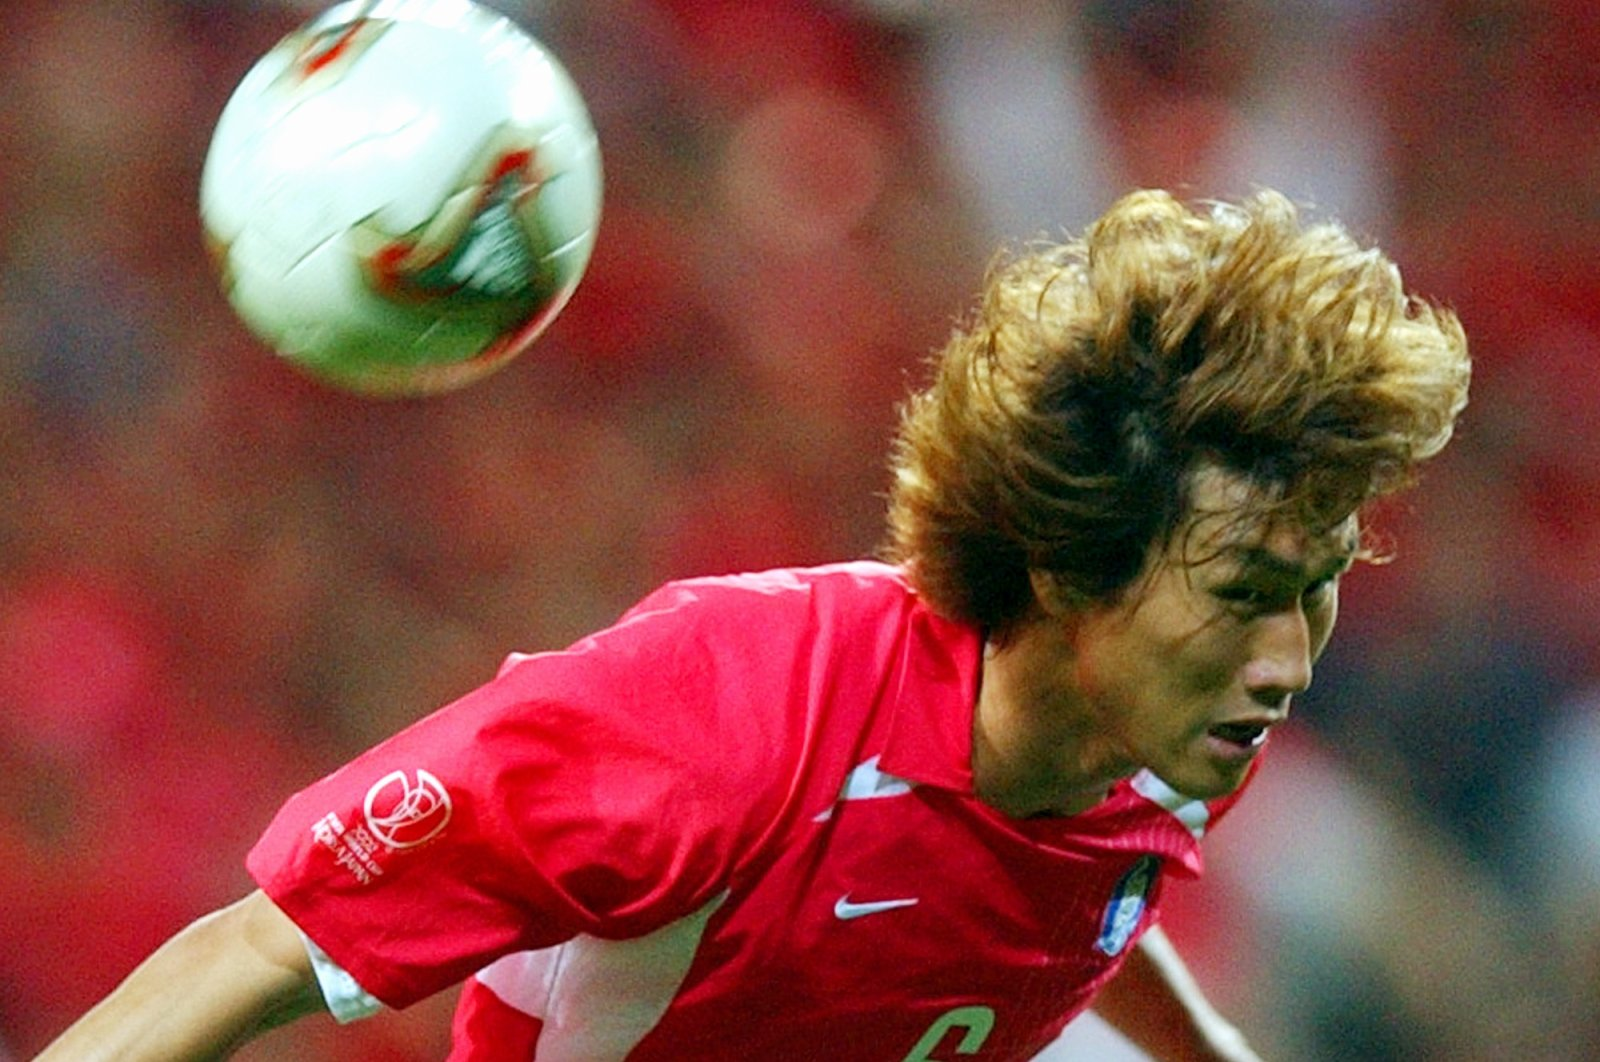 South Korea's Yoo Sang-chul jumps for a header, during the 2002 World Cup semifinal against Germany, at the Seoul World Cup stadium, Seoul, South Korea, June 25, 2002. (AP photo)